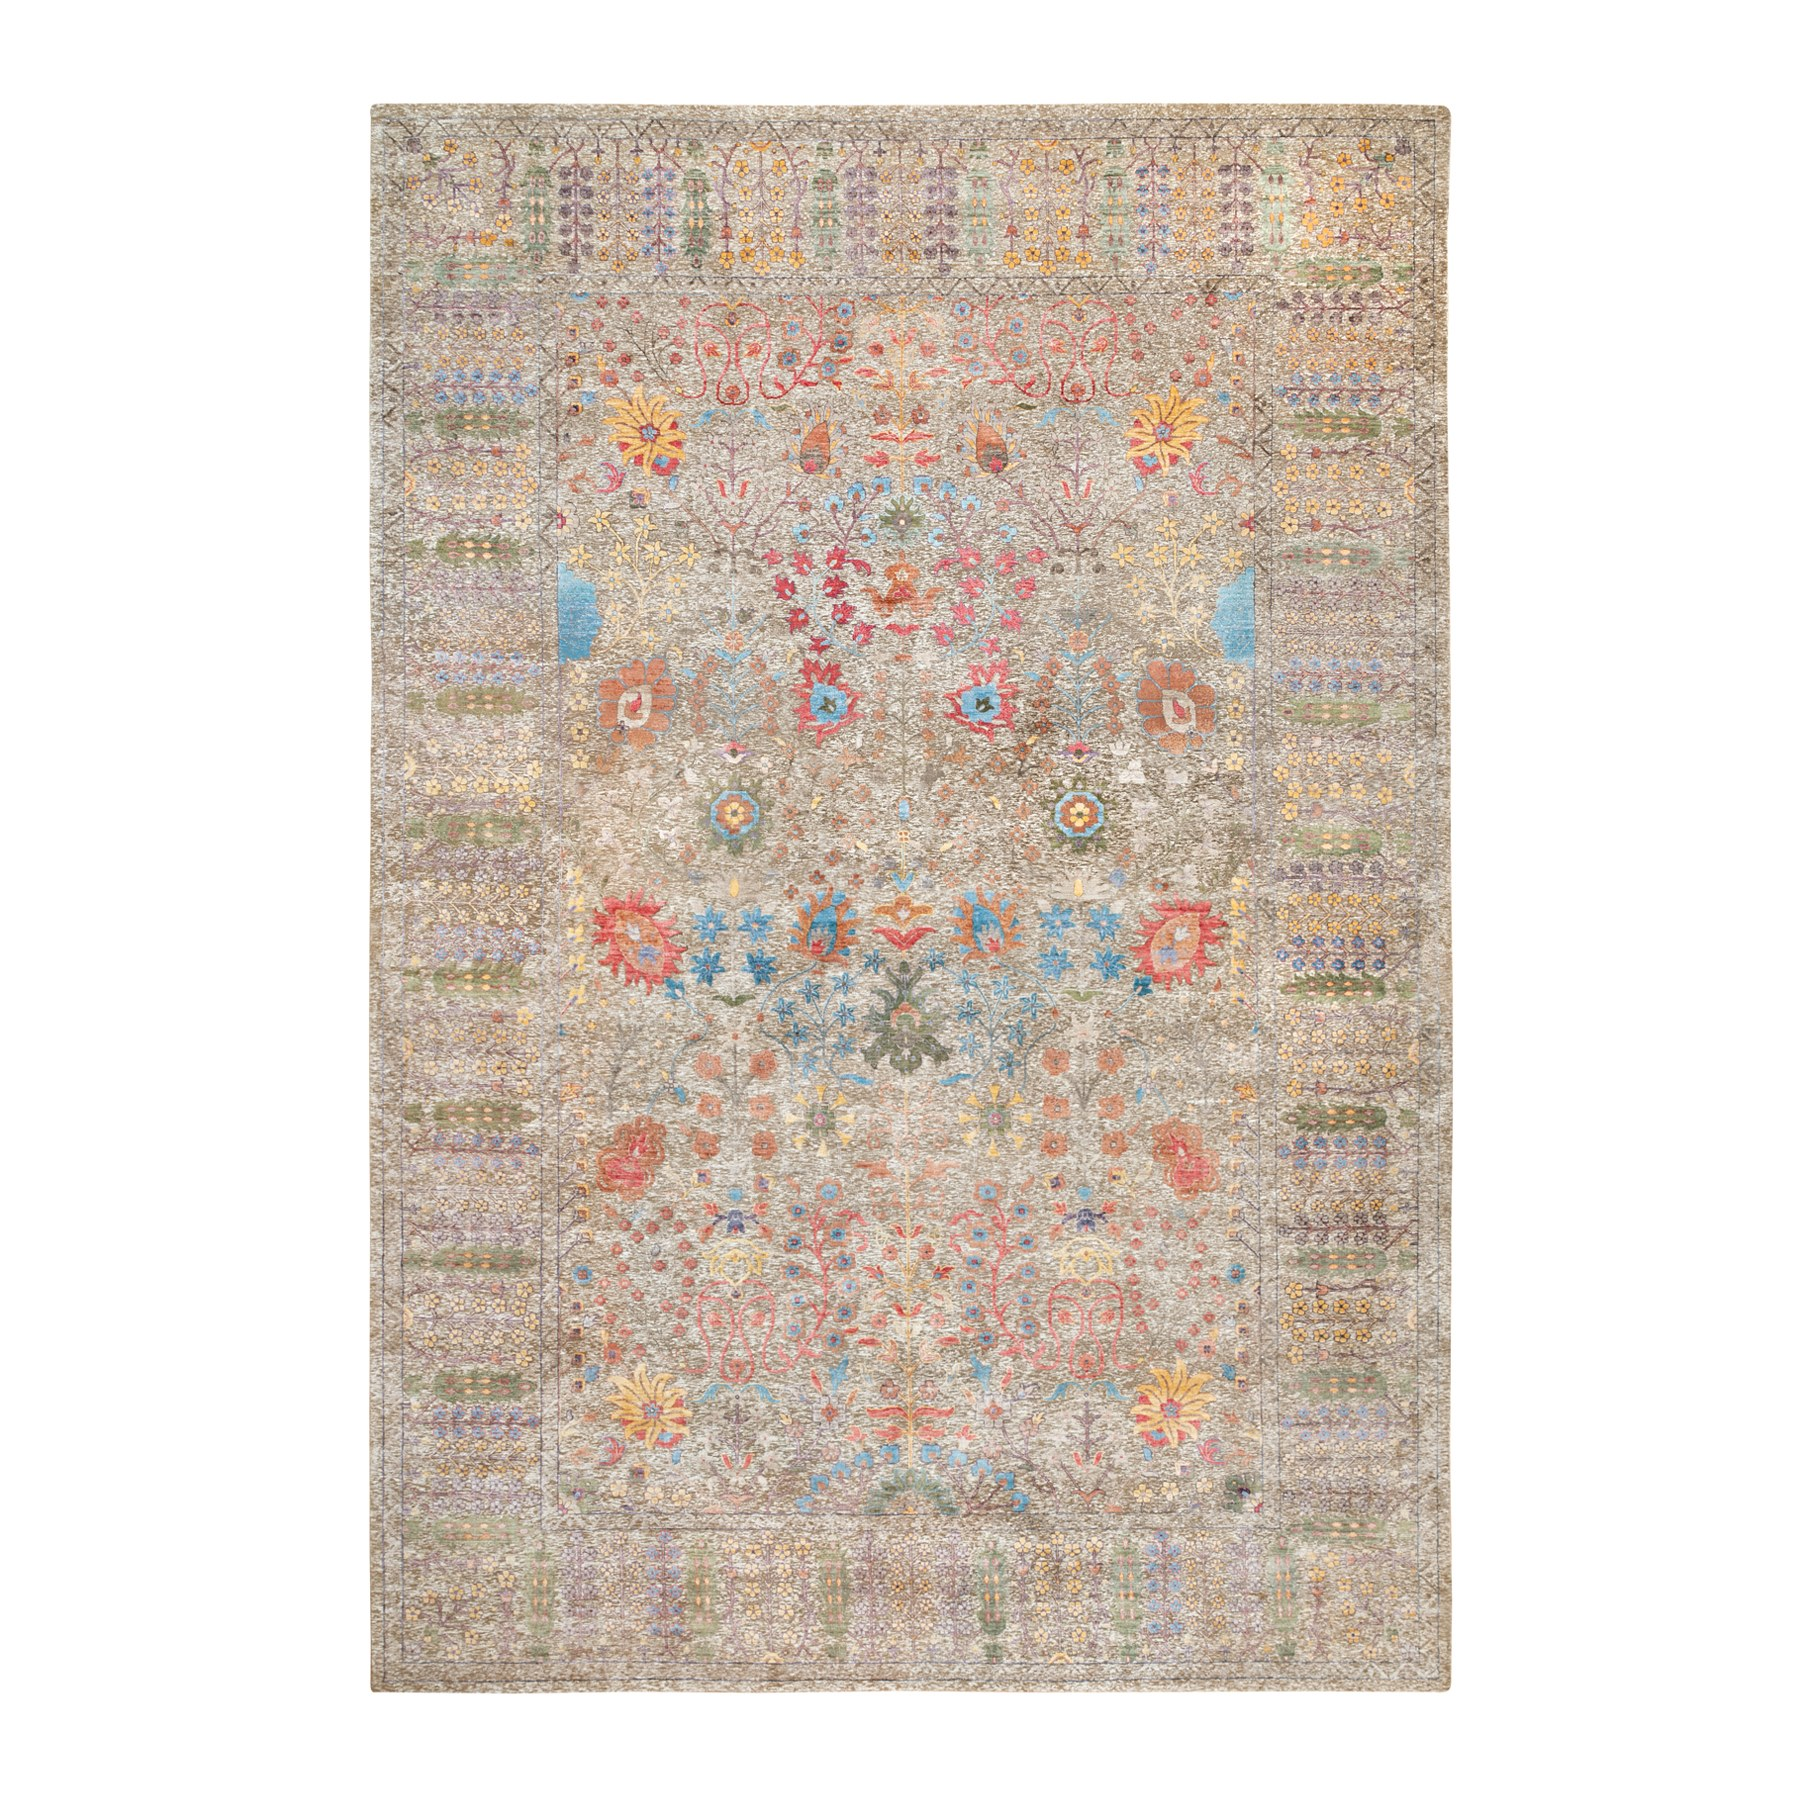 12'x18' Silk With Textured Wool Taupe Directional Vase Design Hand Knotted Oriental Gallery Size Rug